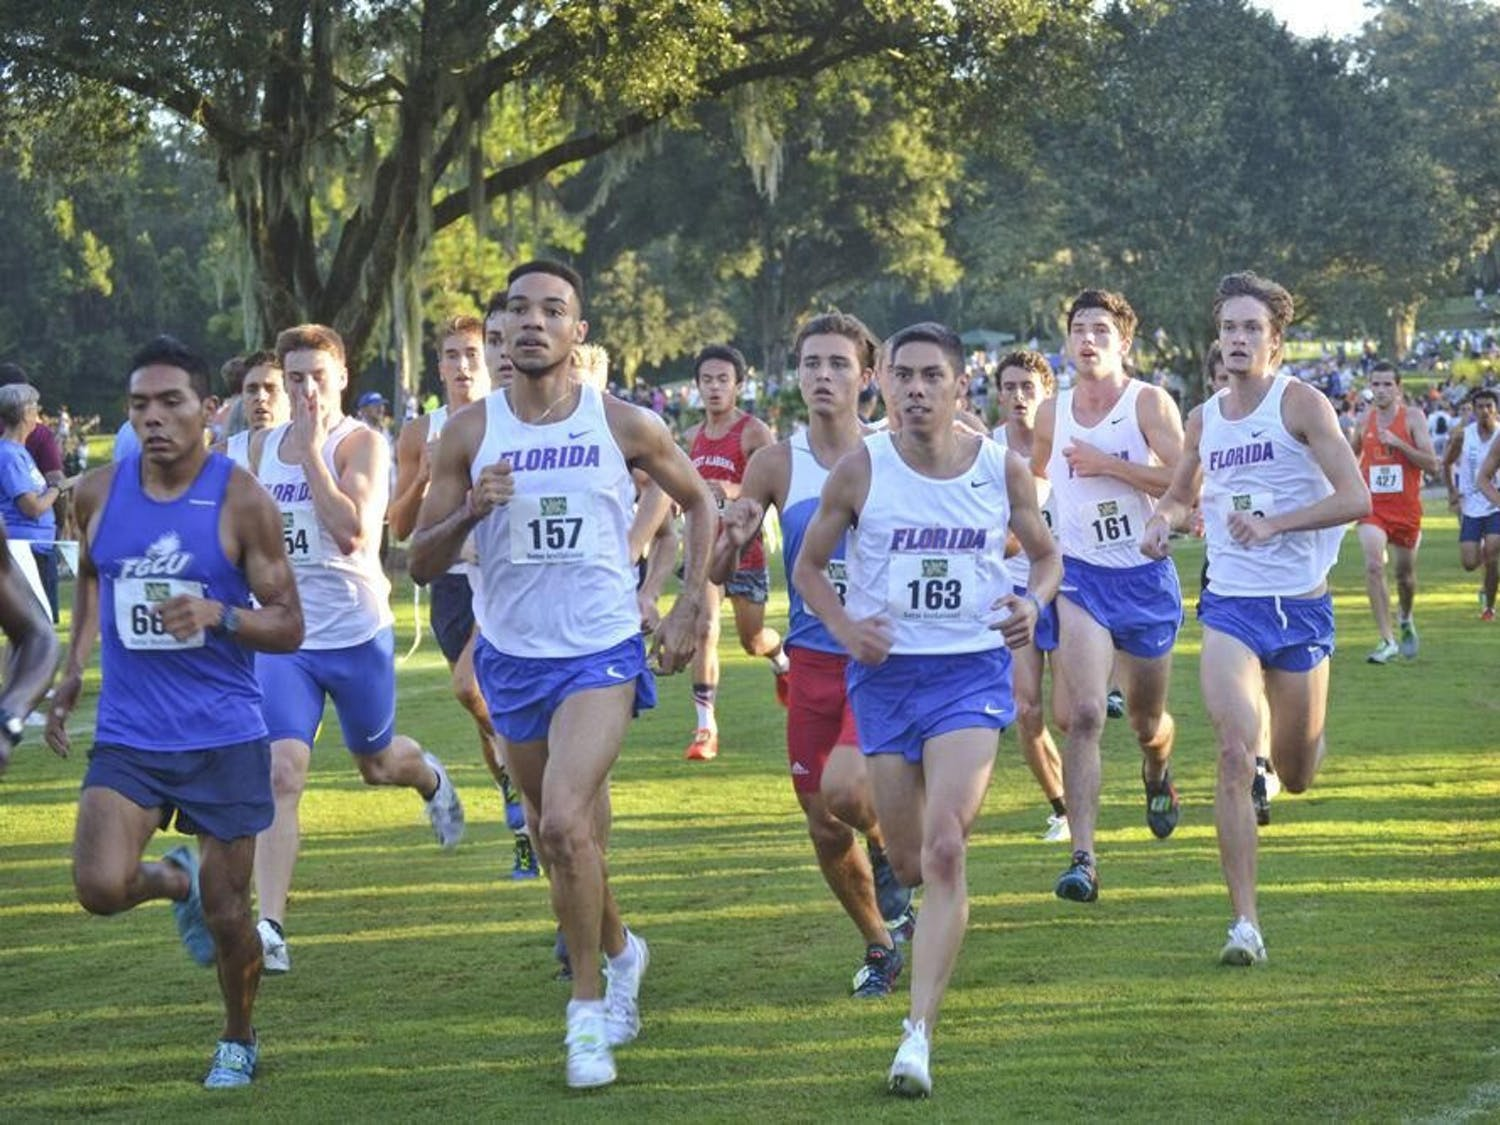 The Gators placed third at the Mountain Dew Invitational Friday. It was the first UF sporting event in six months due to the COVID-19 pandemic.